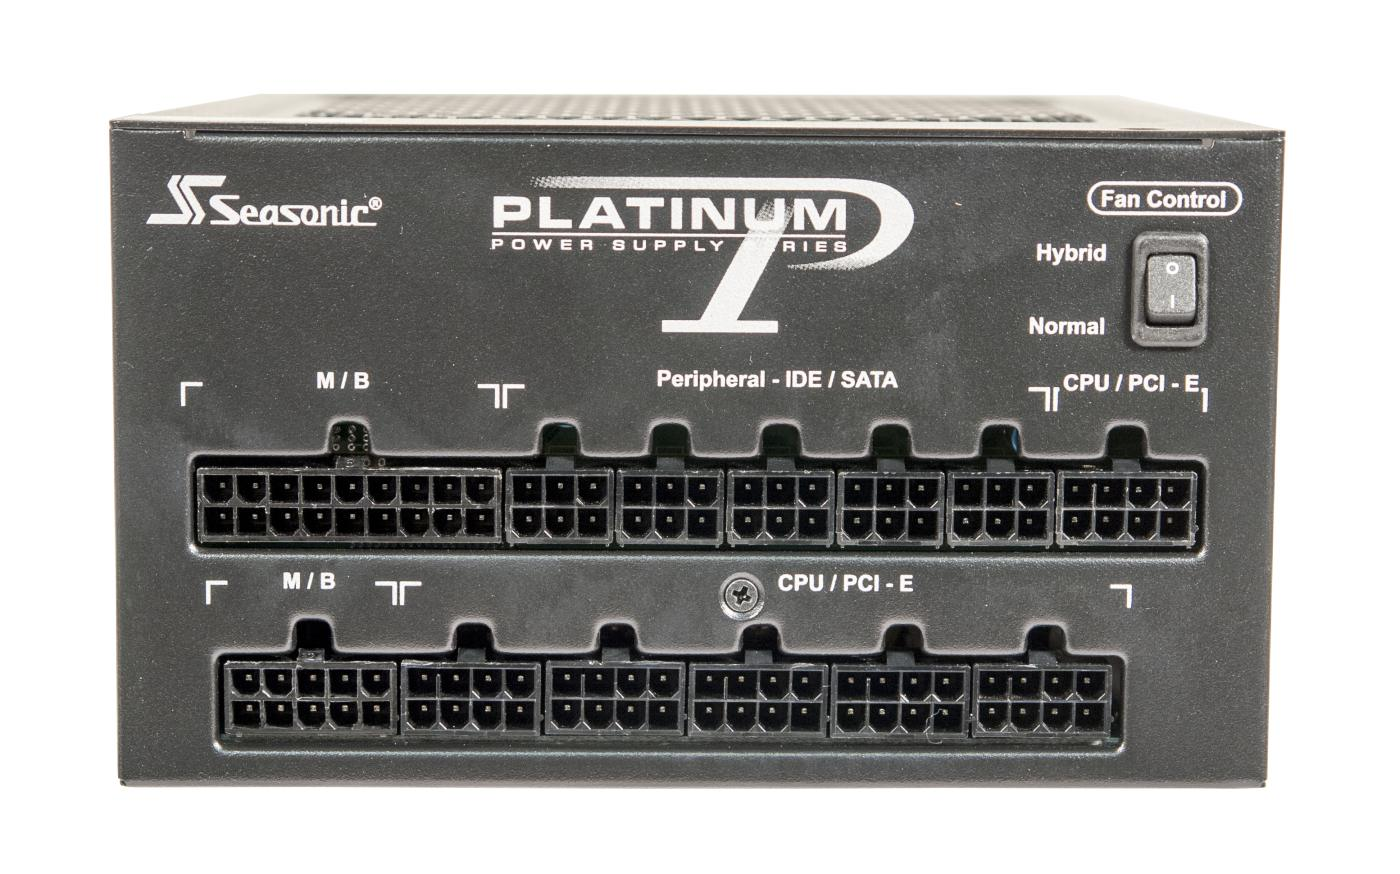 Seasonic Platinum SS-860XP2